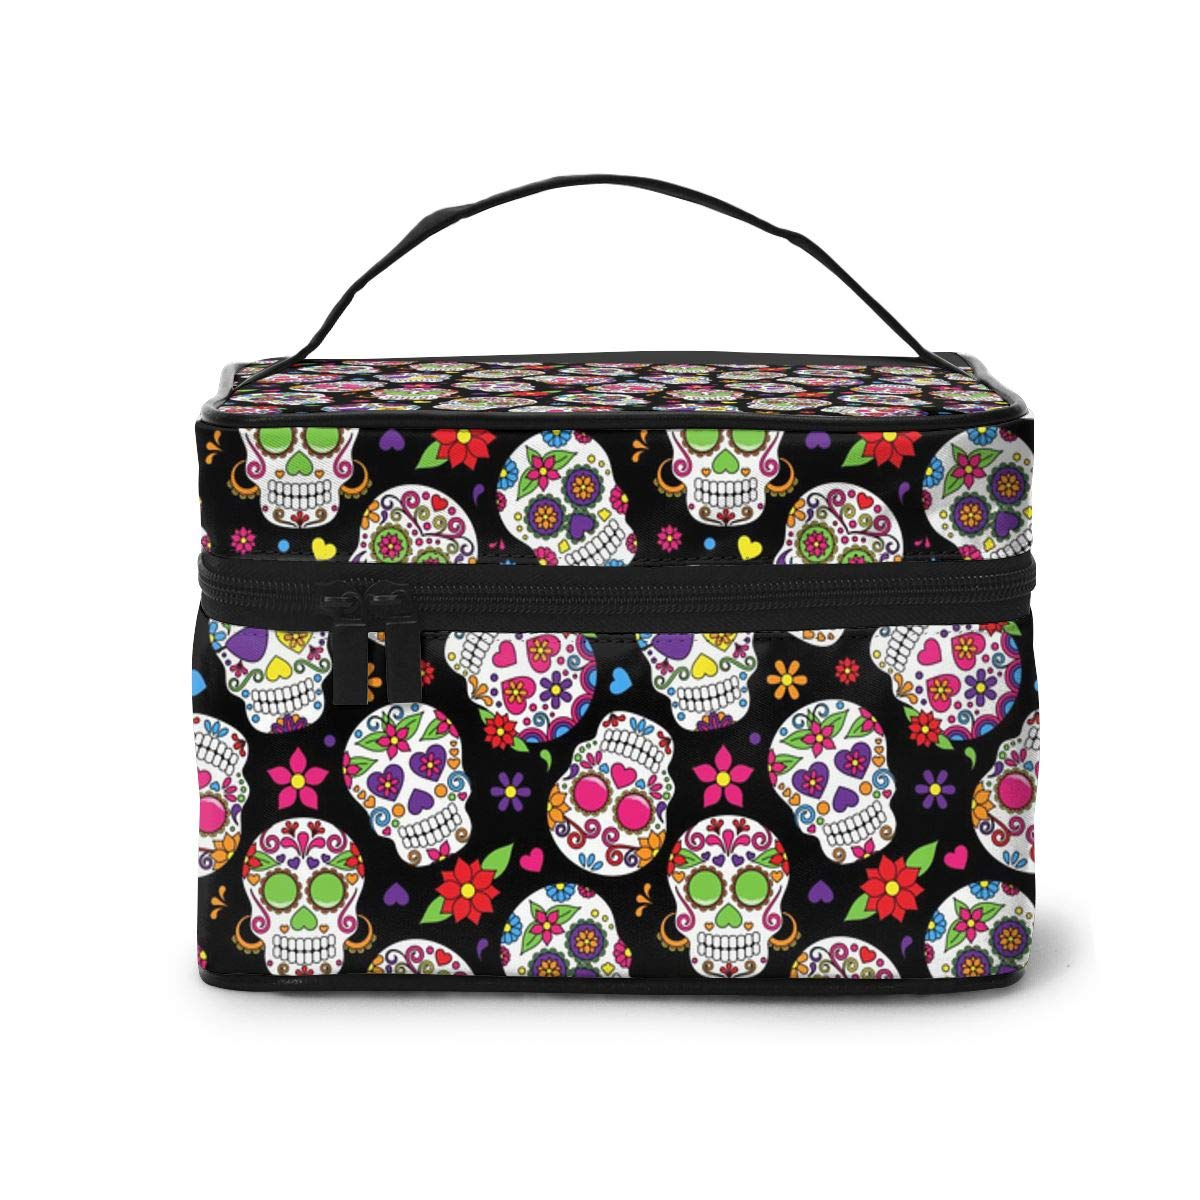 AHOOCUSTOM Sugar Skull Large Makeup Bag Travel Multifunction Cosmetic Case Toiletry Organizer Portable Train Case for Women and Girls